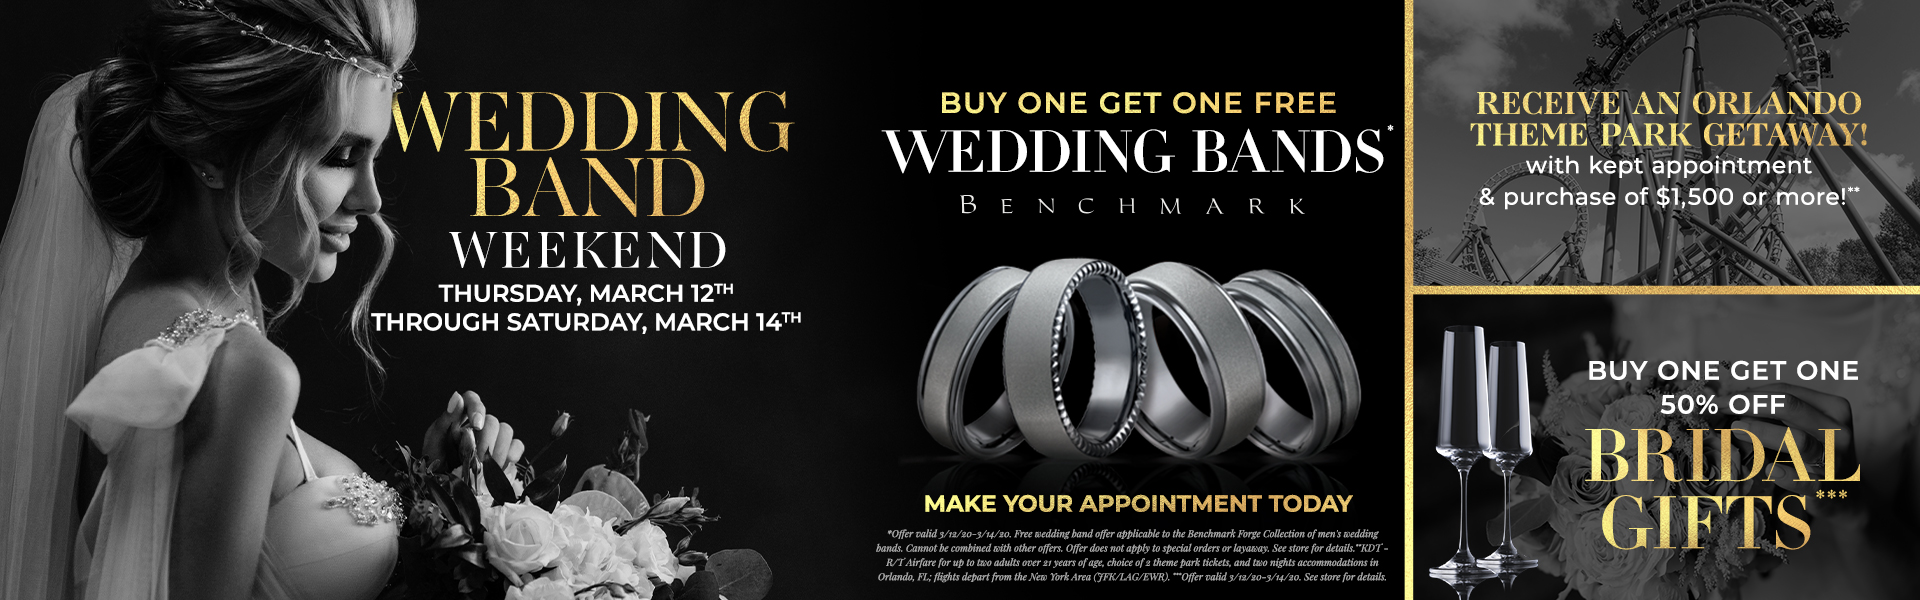 Casale Wedding Band Weekend Web Banner